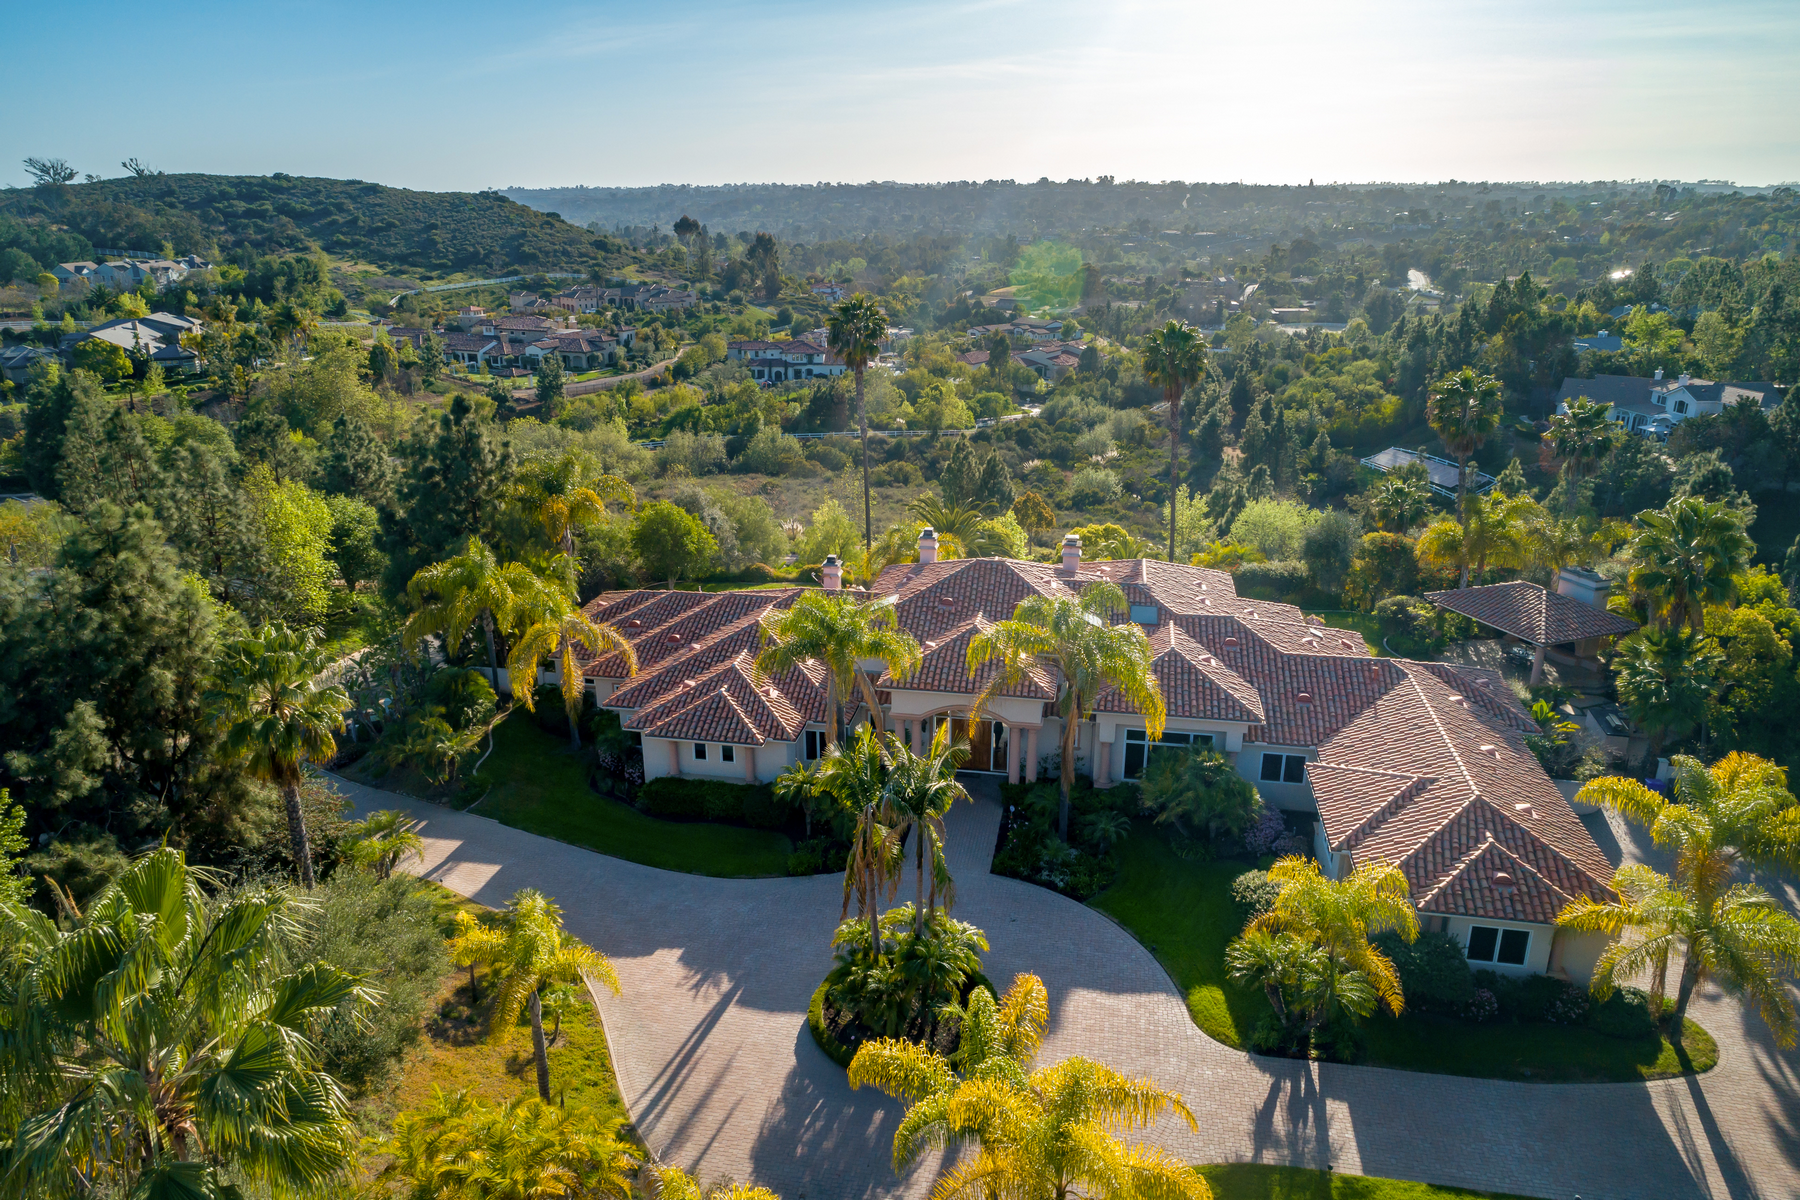 Single Family Home for Active at 3302 Lilac Summit 3302 Lilac Summit Encinitas, California 92024 United States